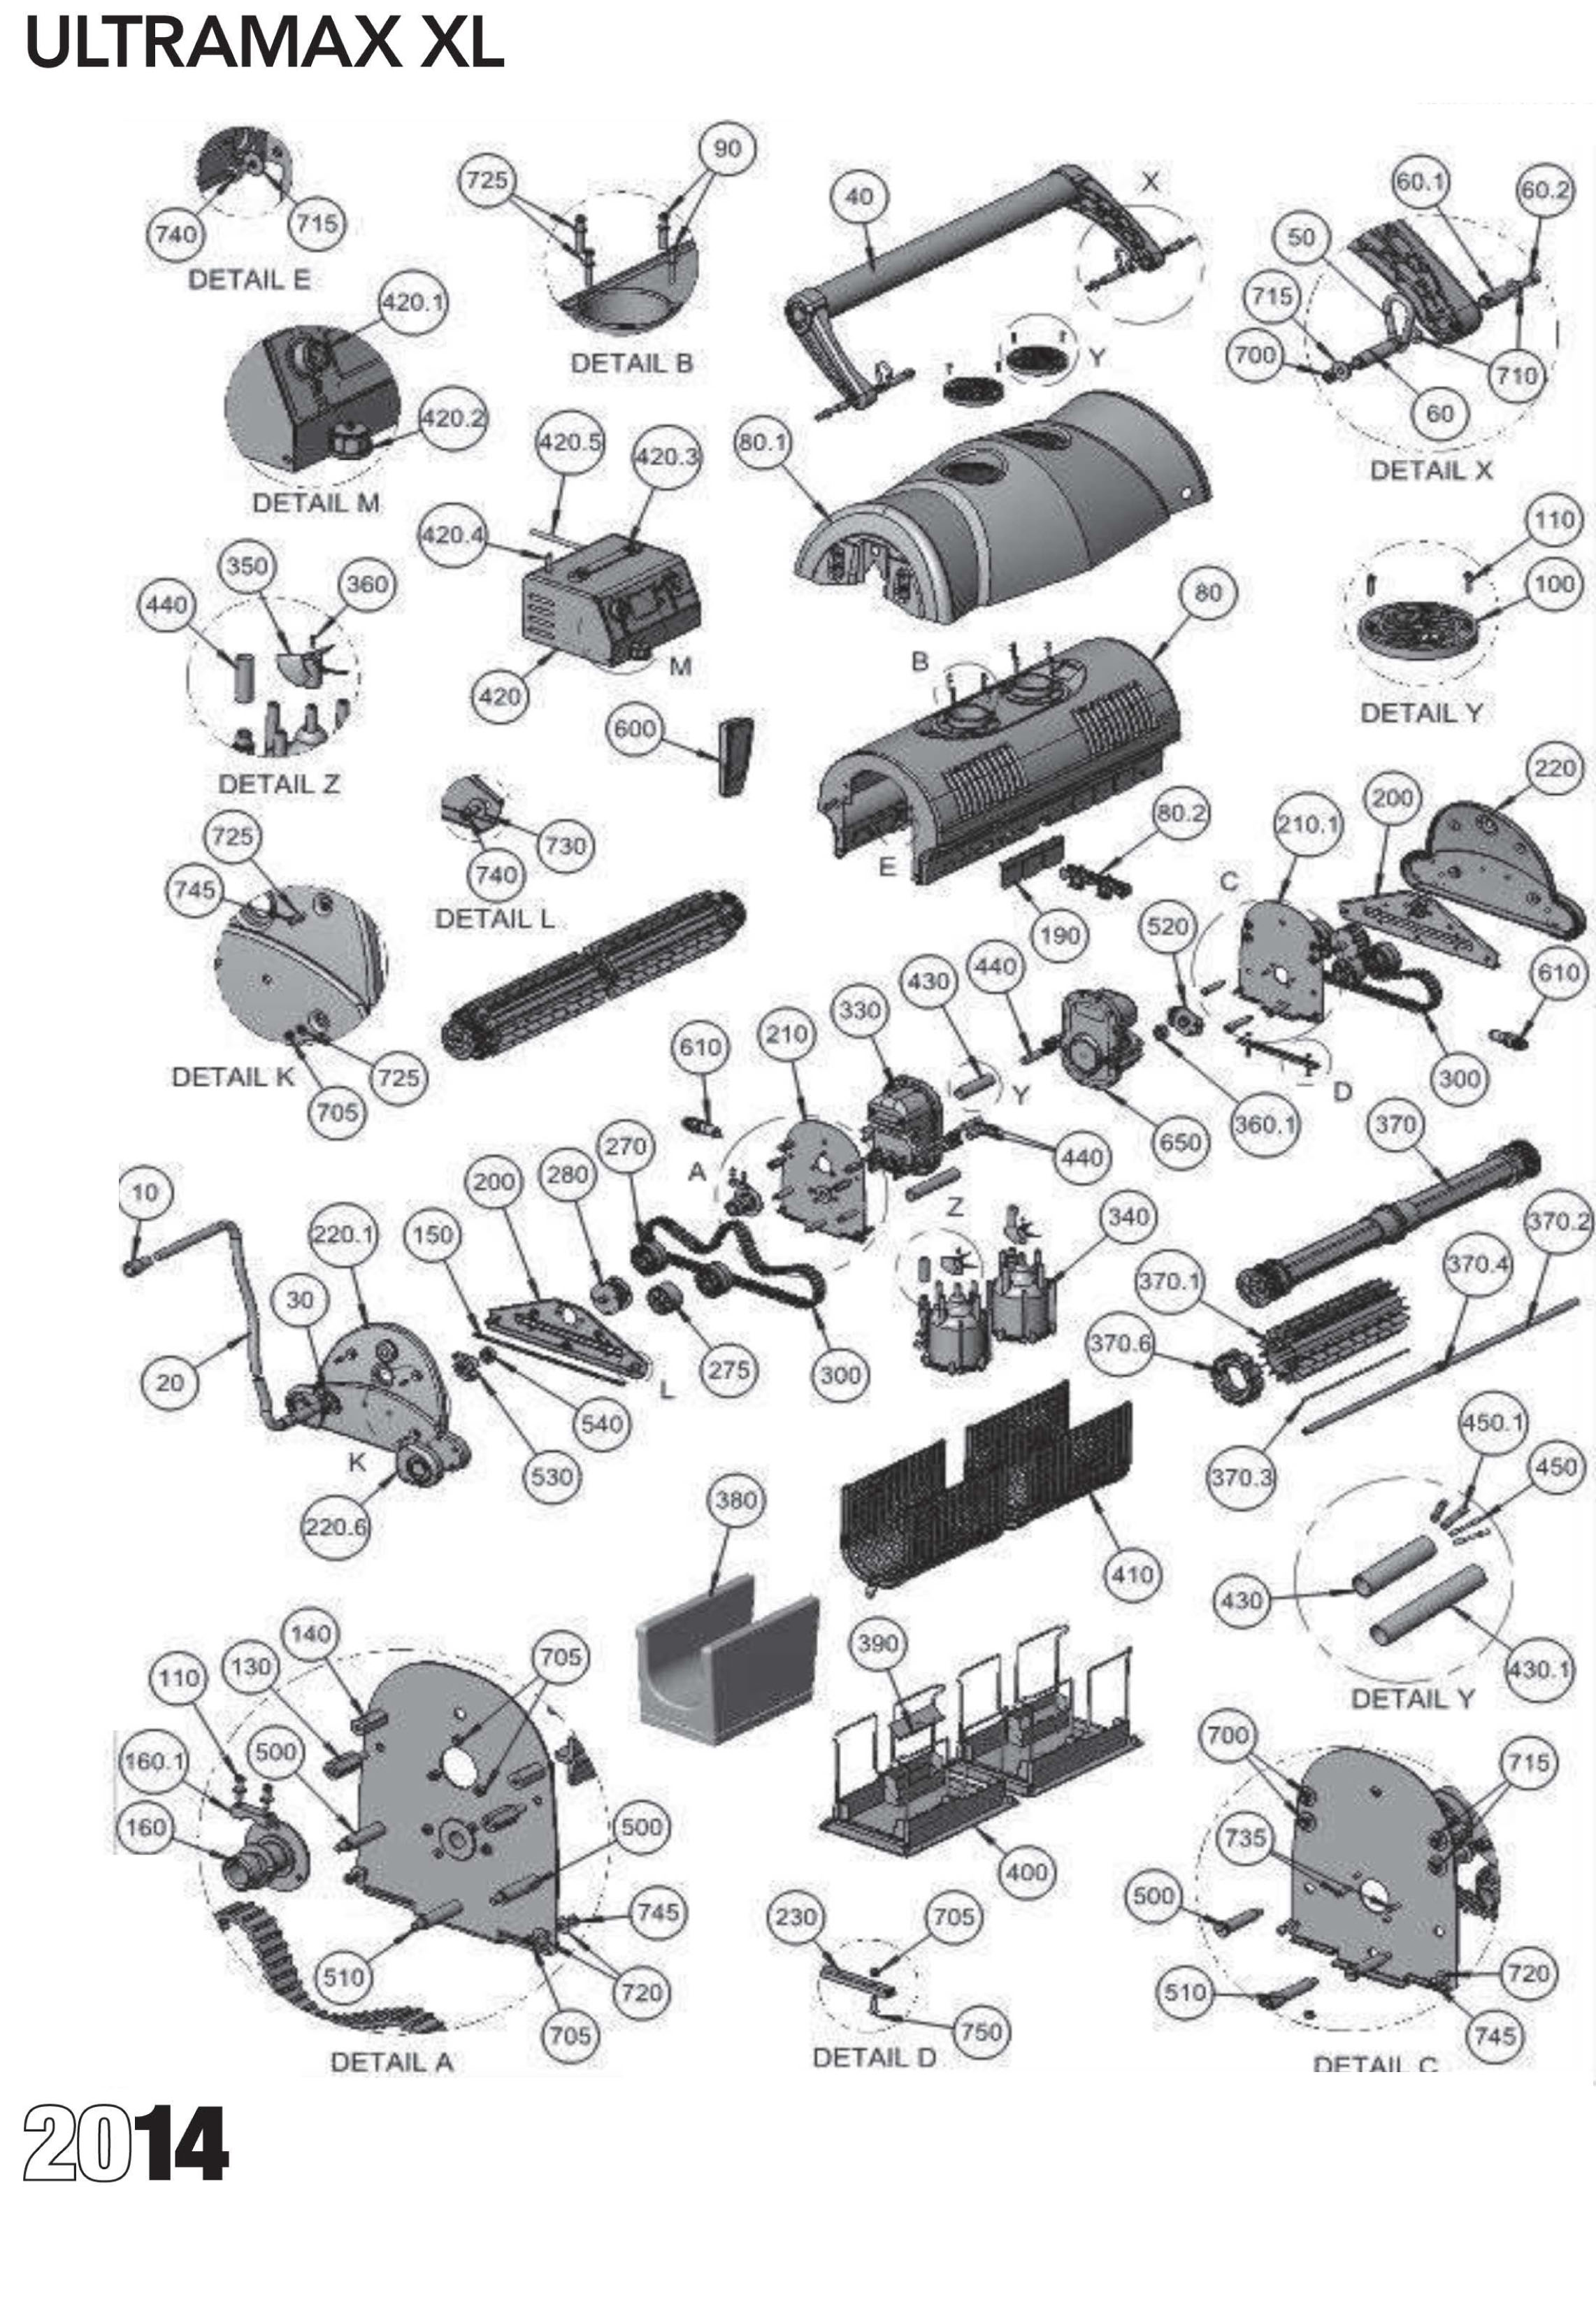 ultramax xl parts diagram and parts list 2014